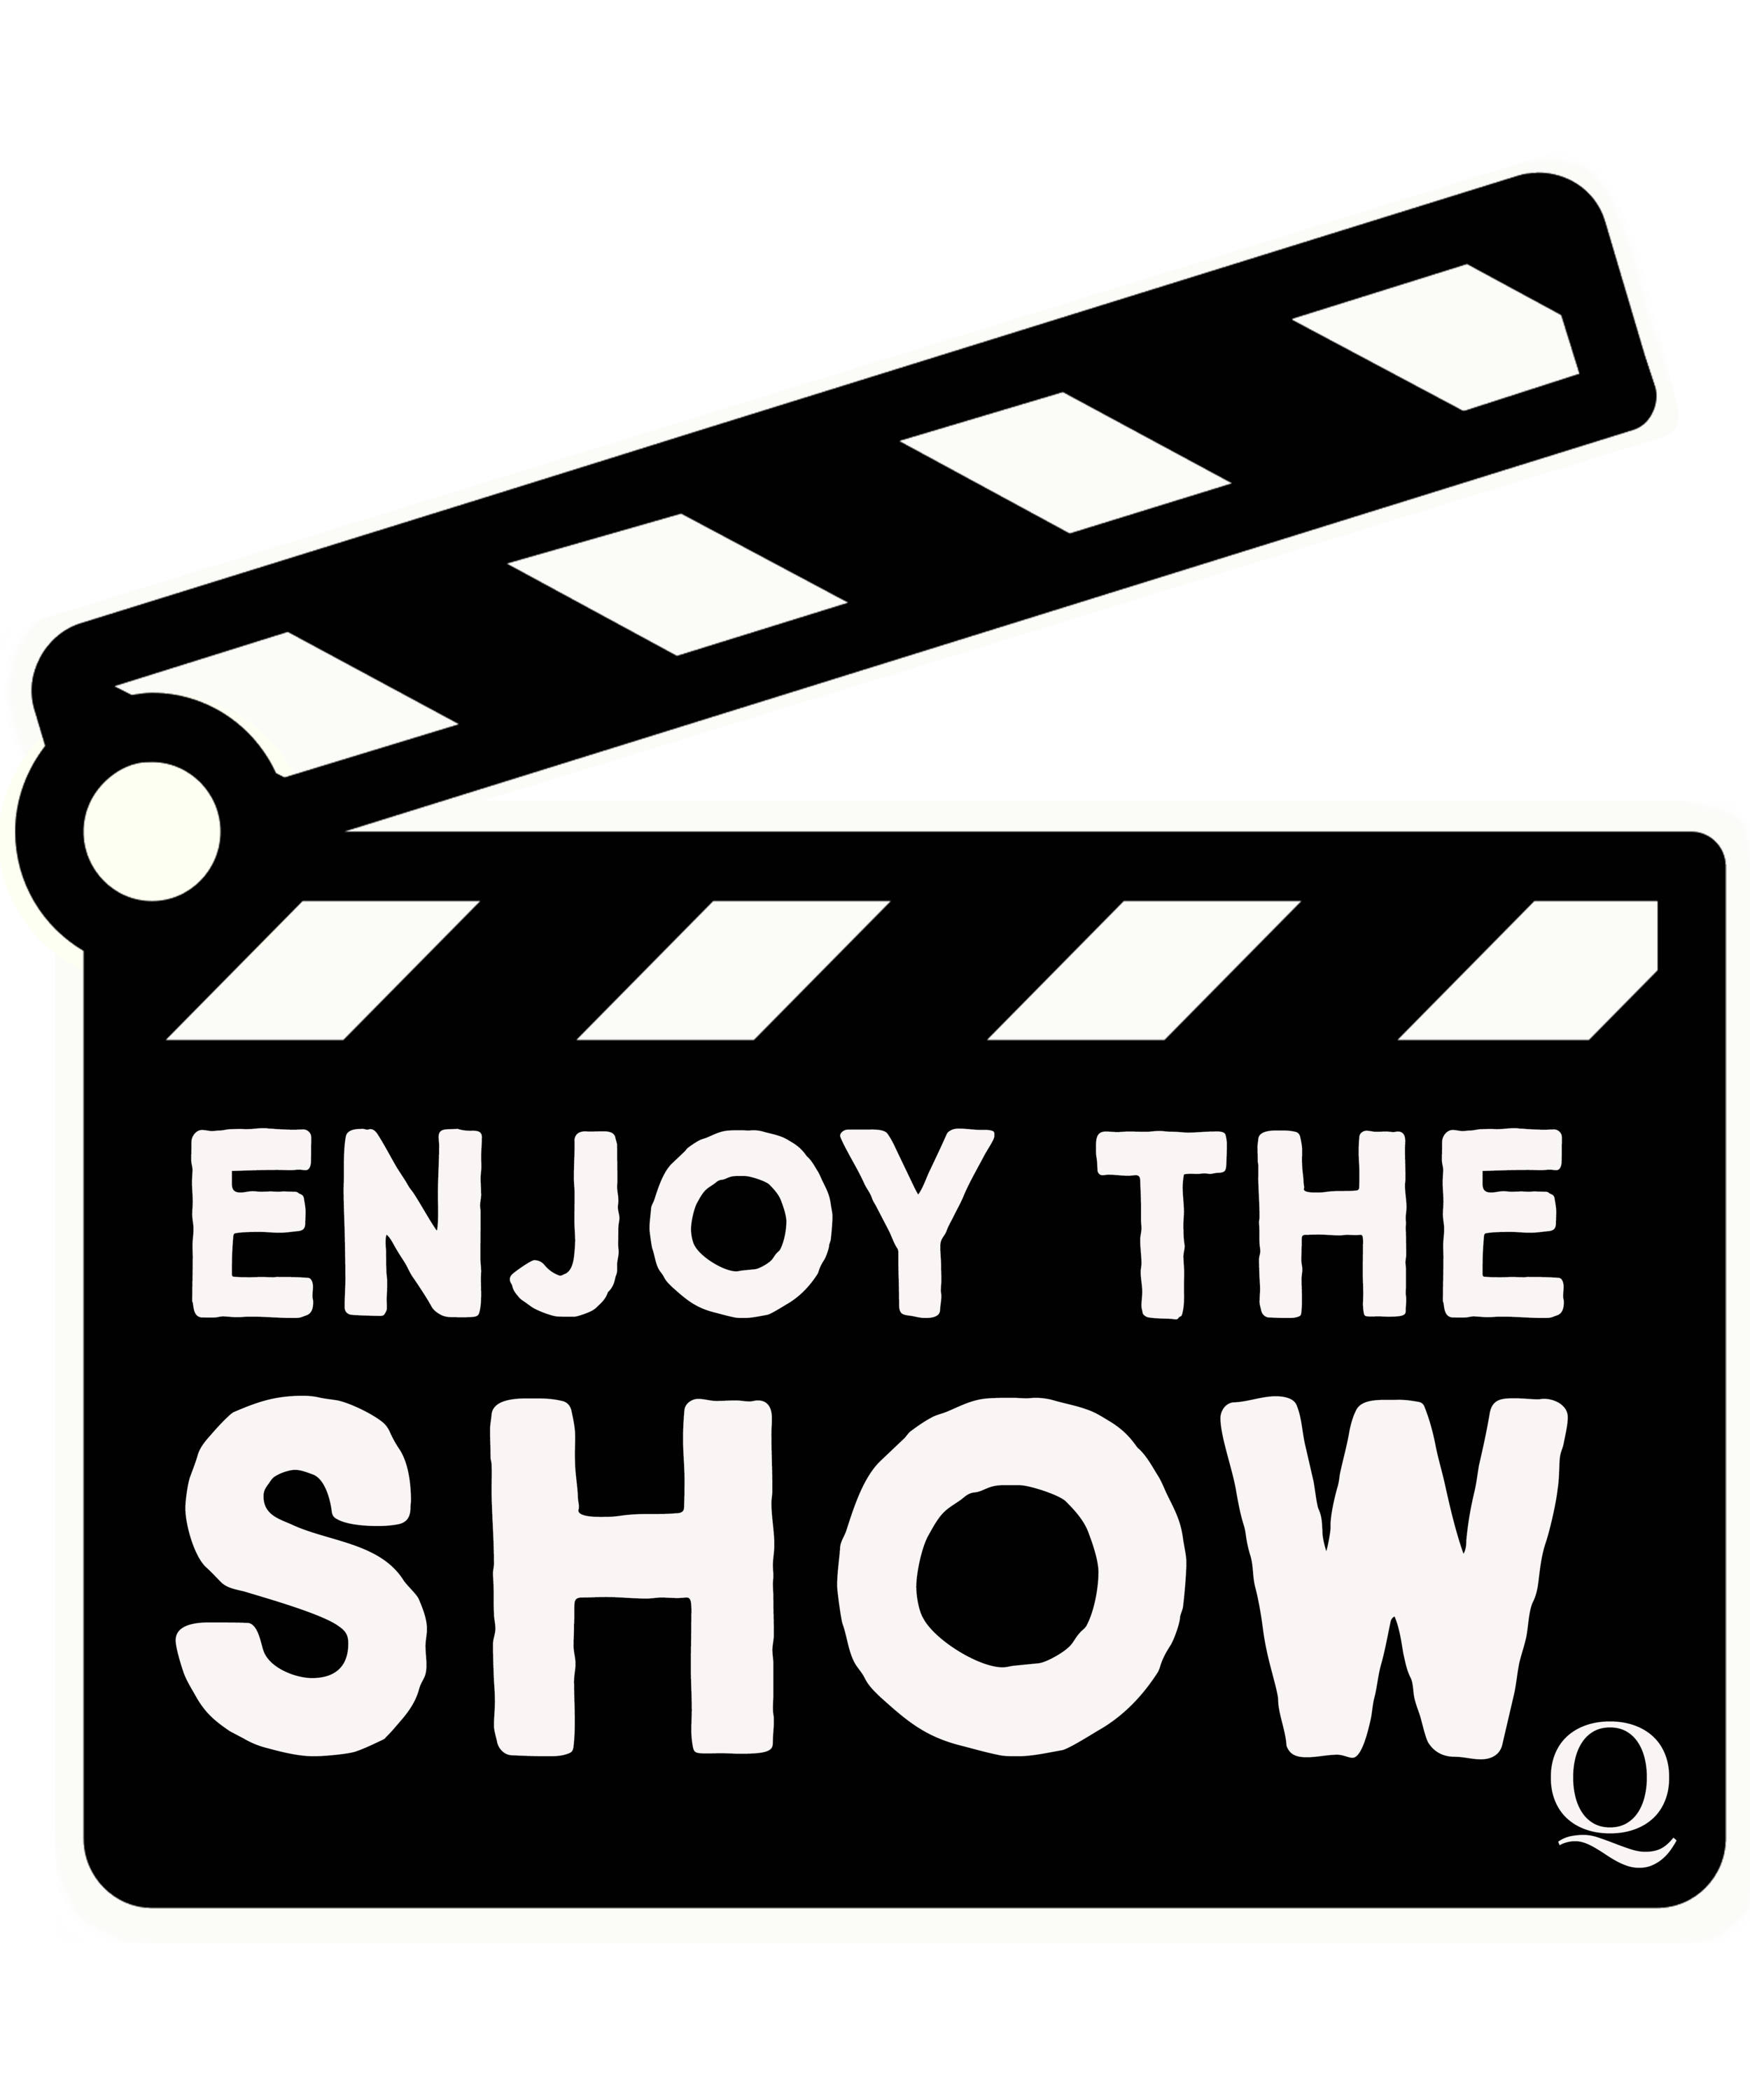 enjoy the show movie 01.png